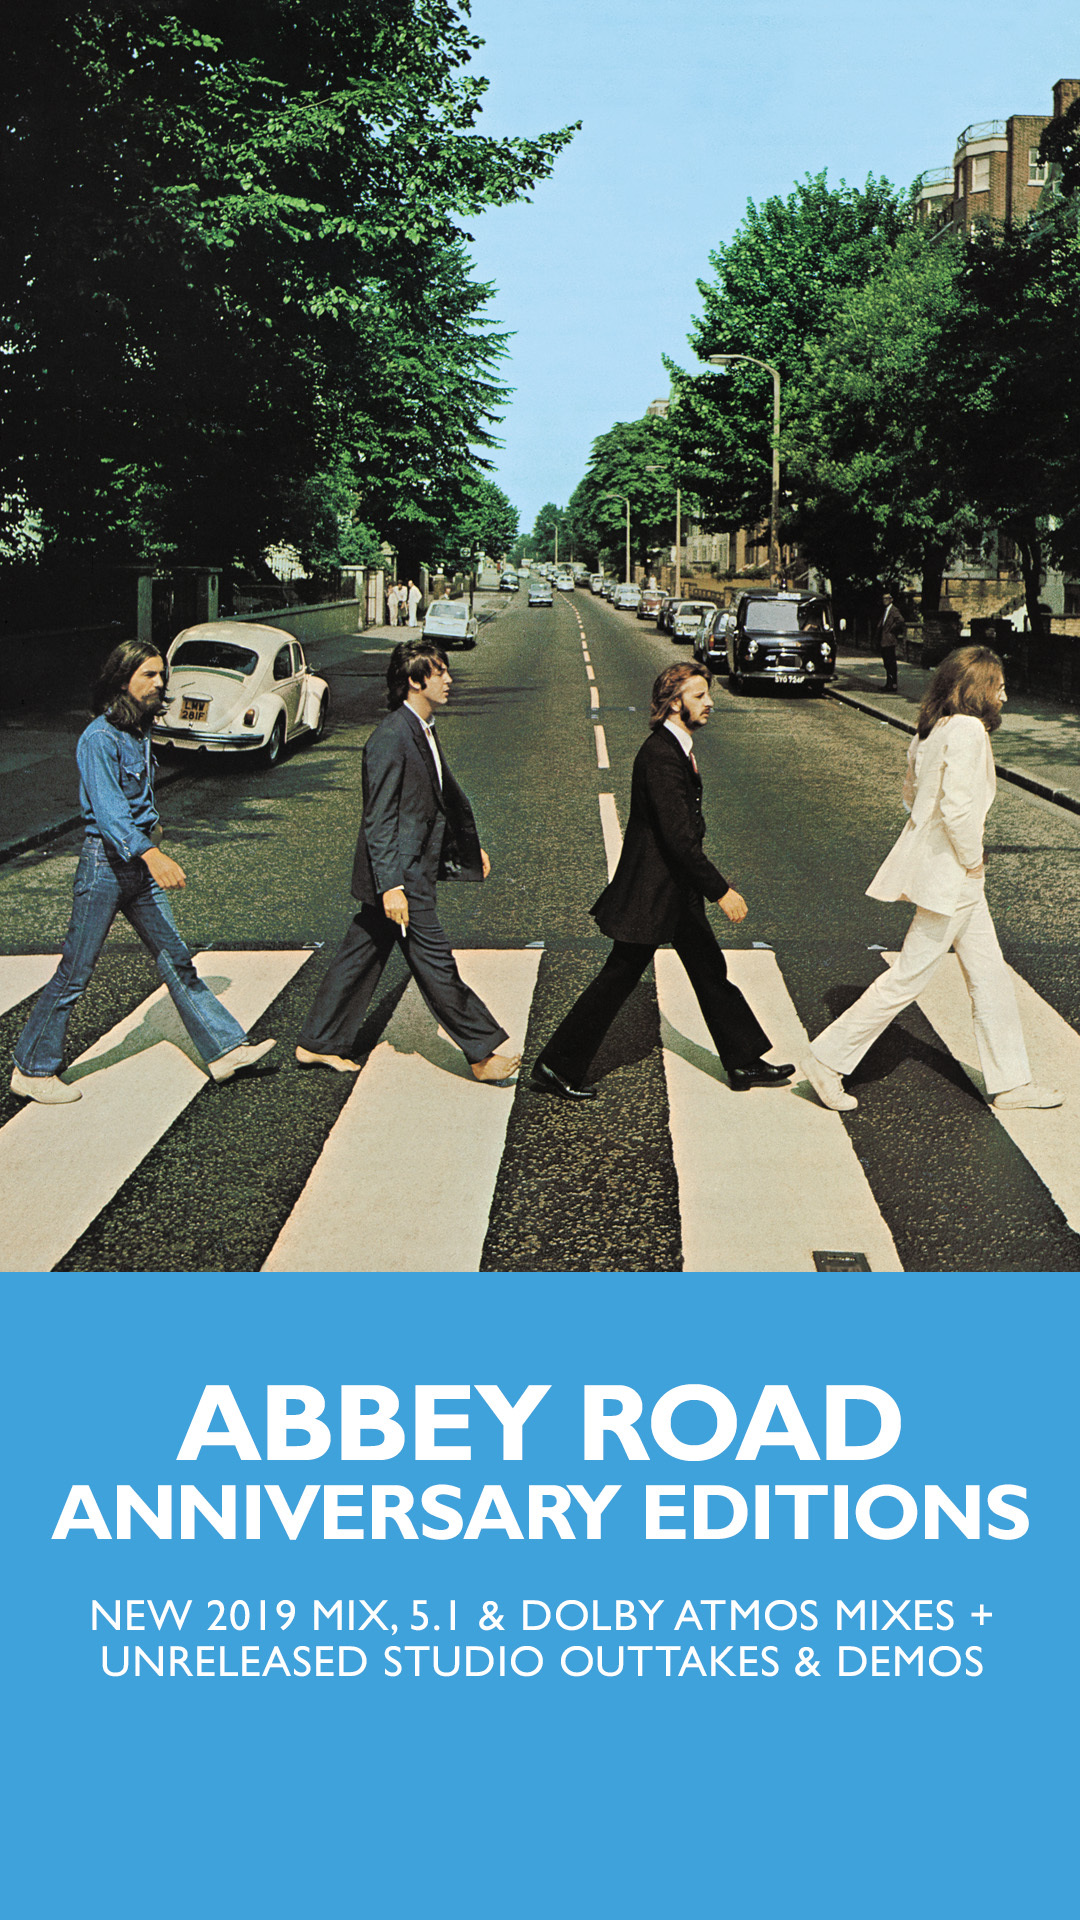 abbey road at thebeatles.com